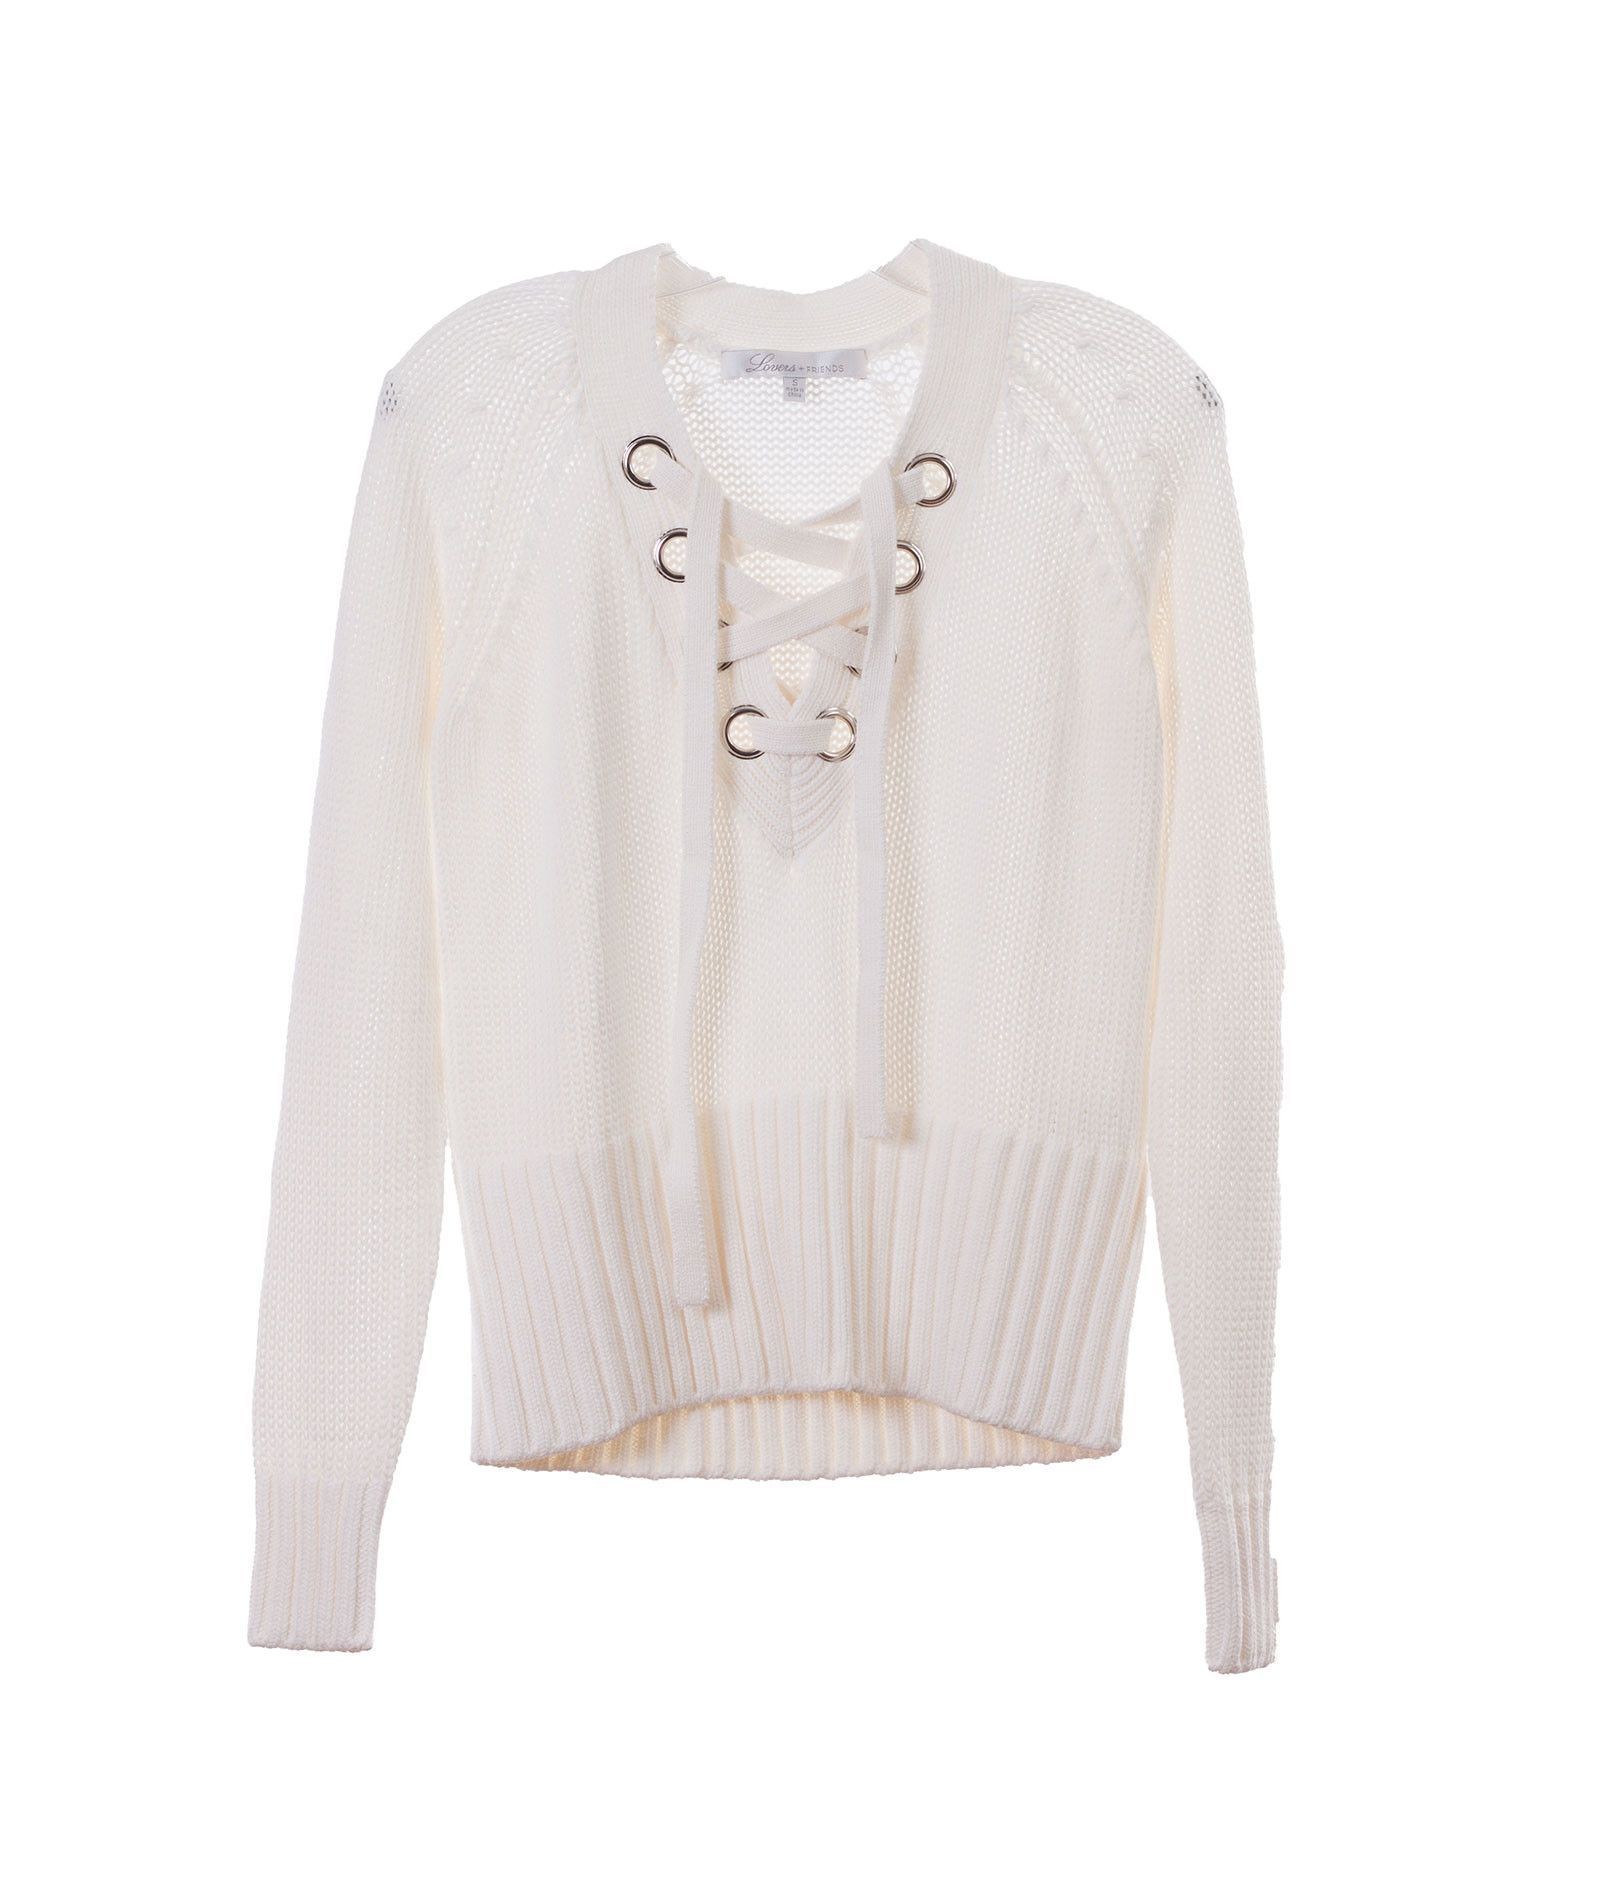 Lovers & Friends Womens Cream Sweater - FINAL | Products, Cream ...